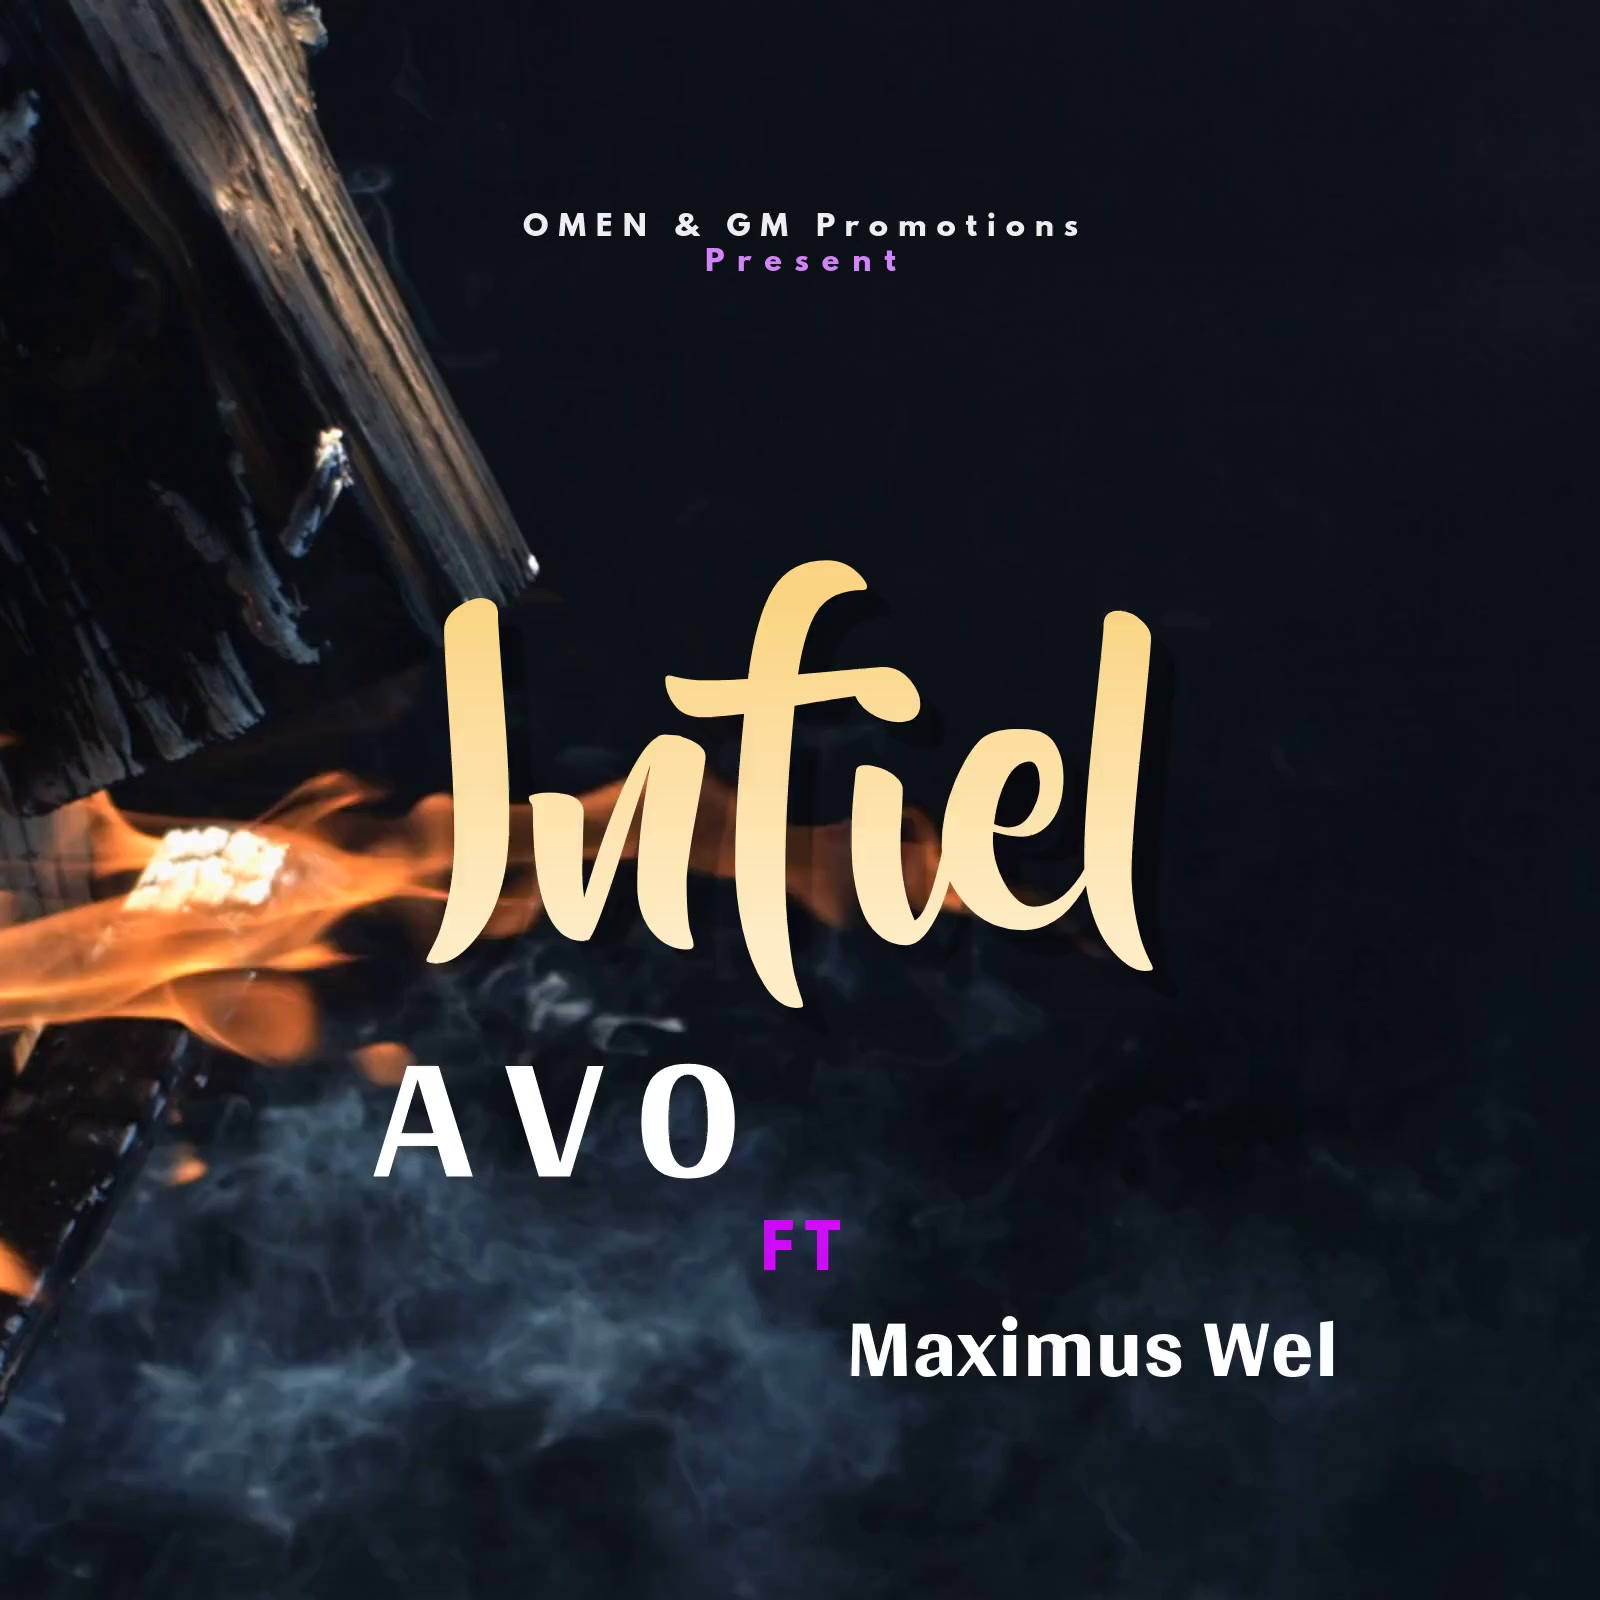 Art for Infiel by AVO FT Maximus Wel